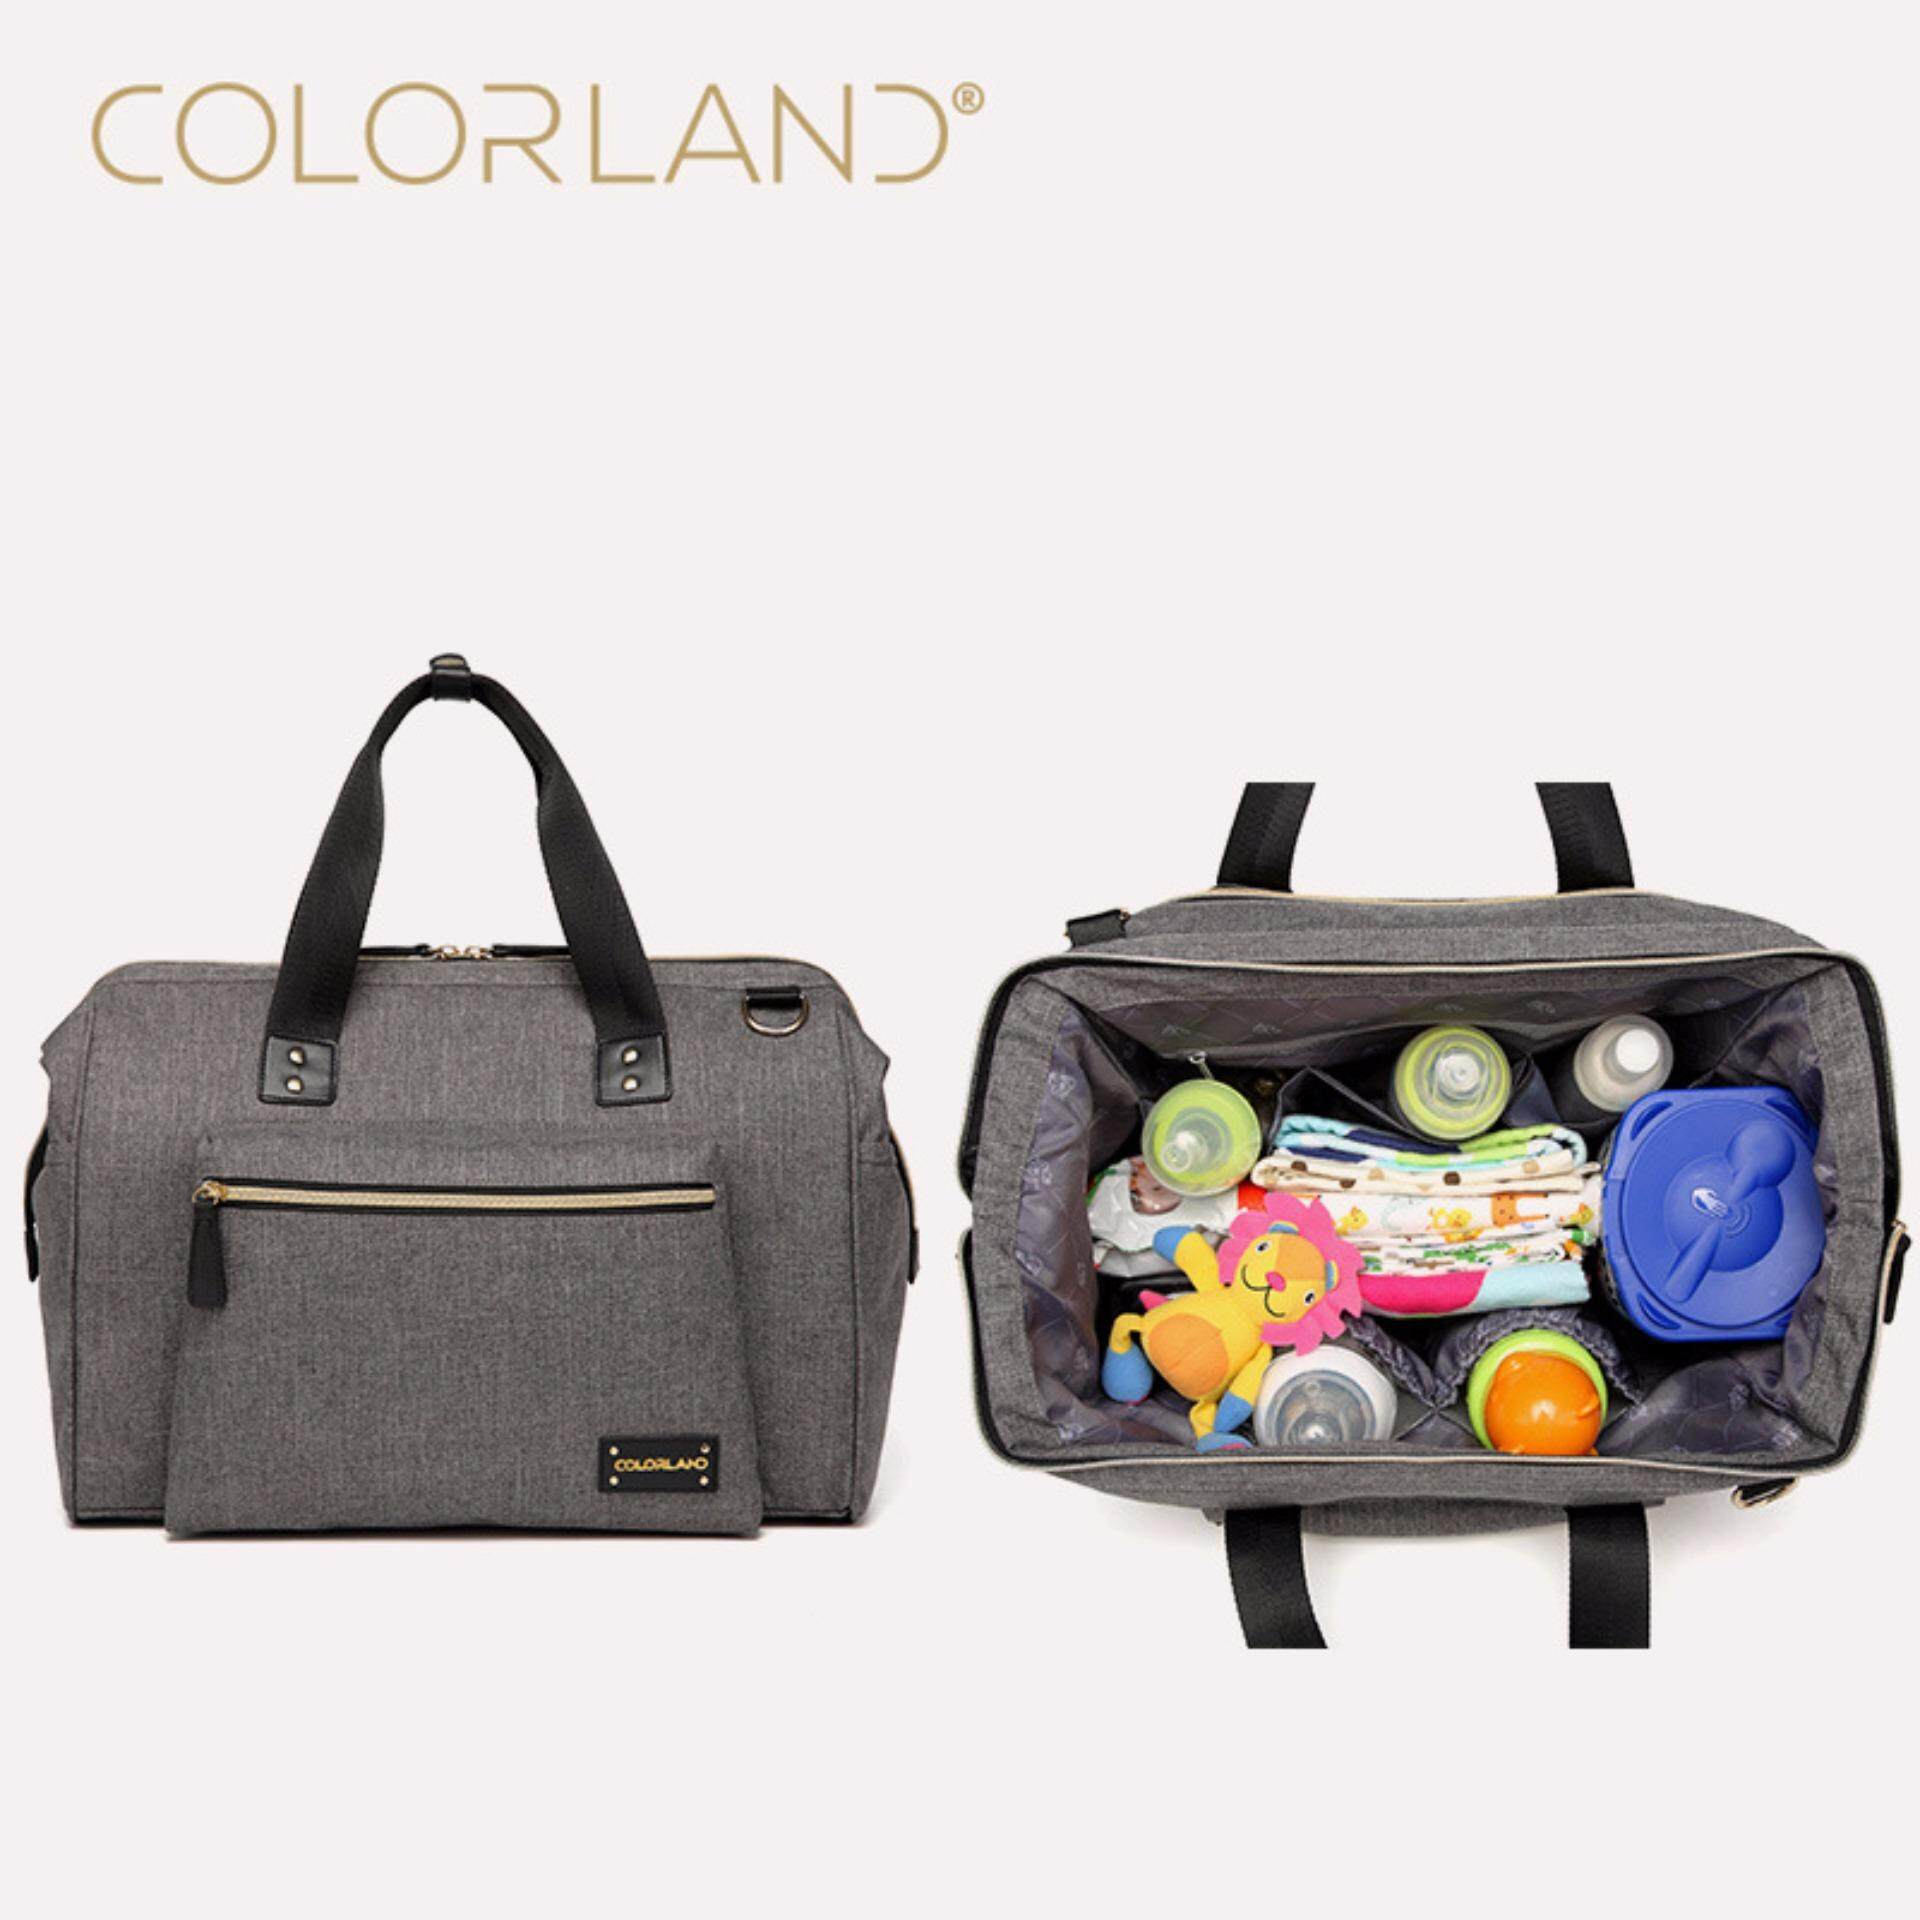 927b10a4a Colorland 40*17*27cm Diapers Bag Fashion Mummy Maternity Nappy Bag Brand  Baby Travel